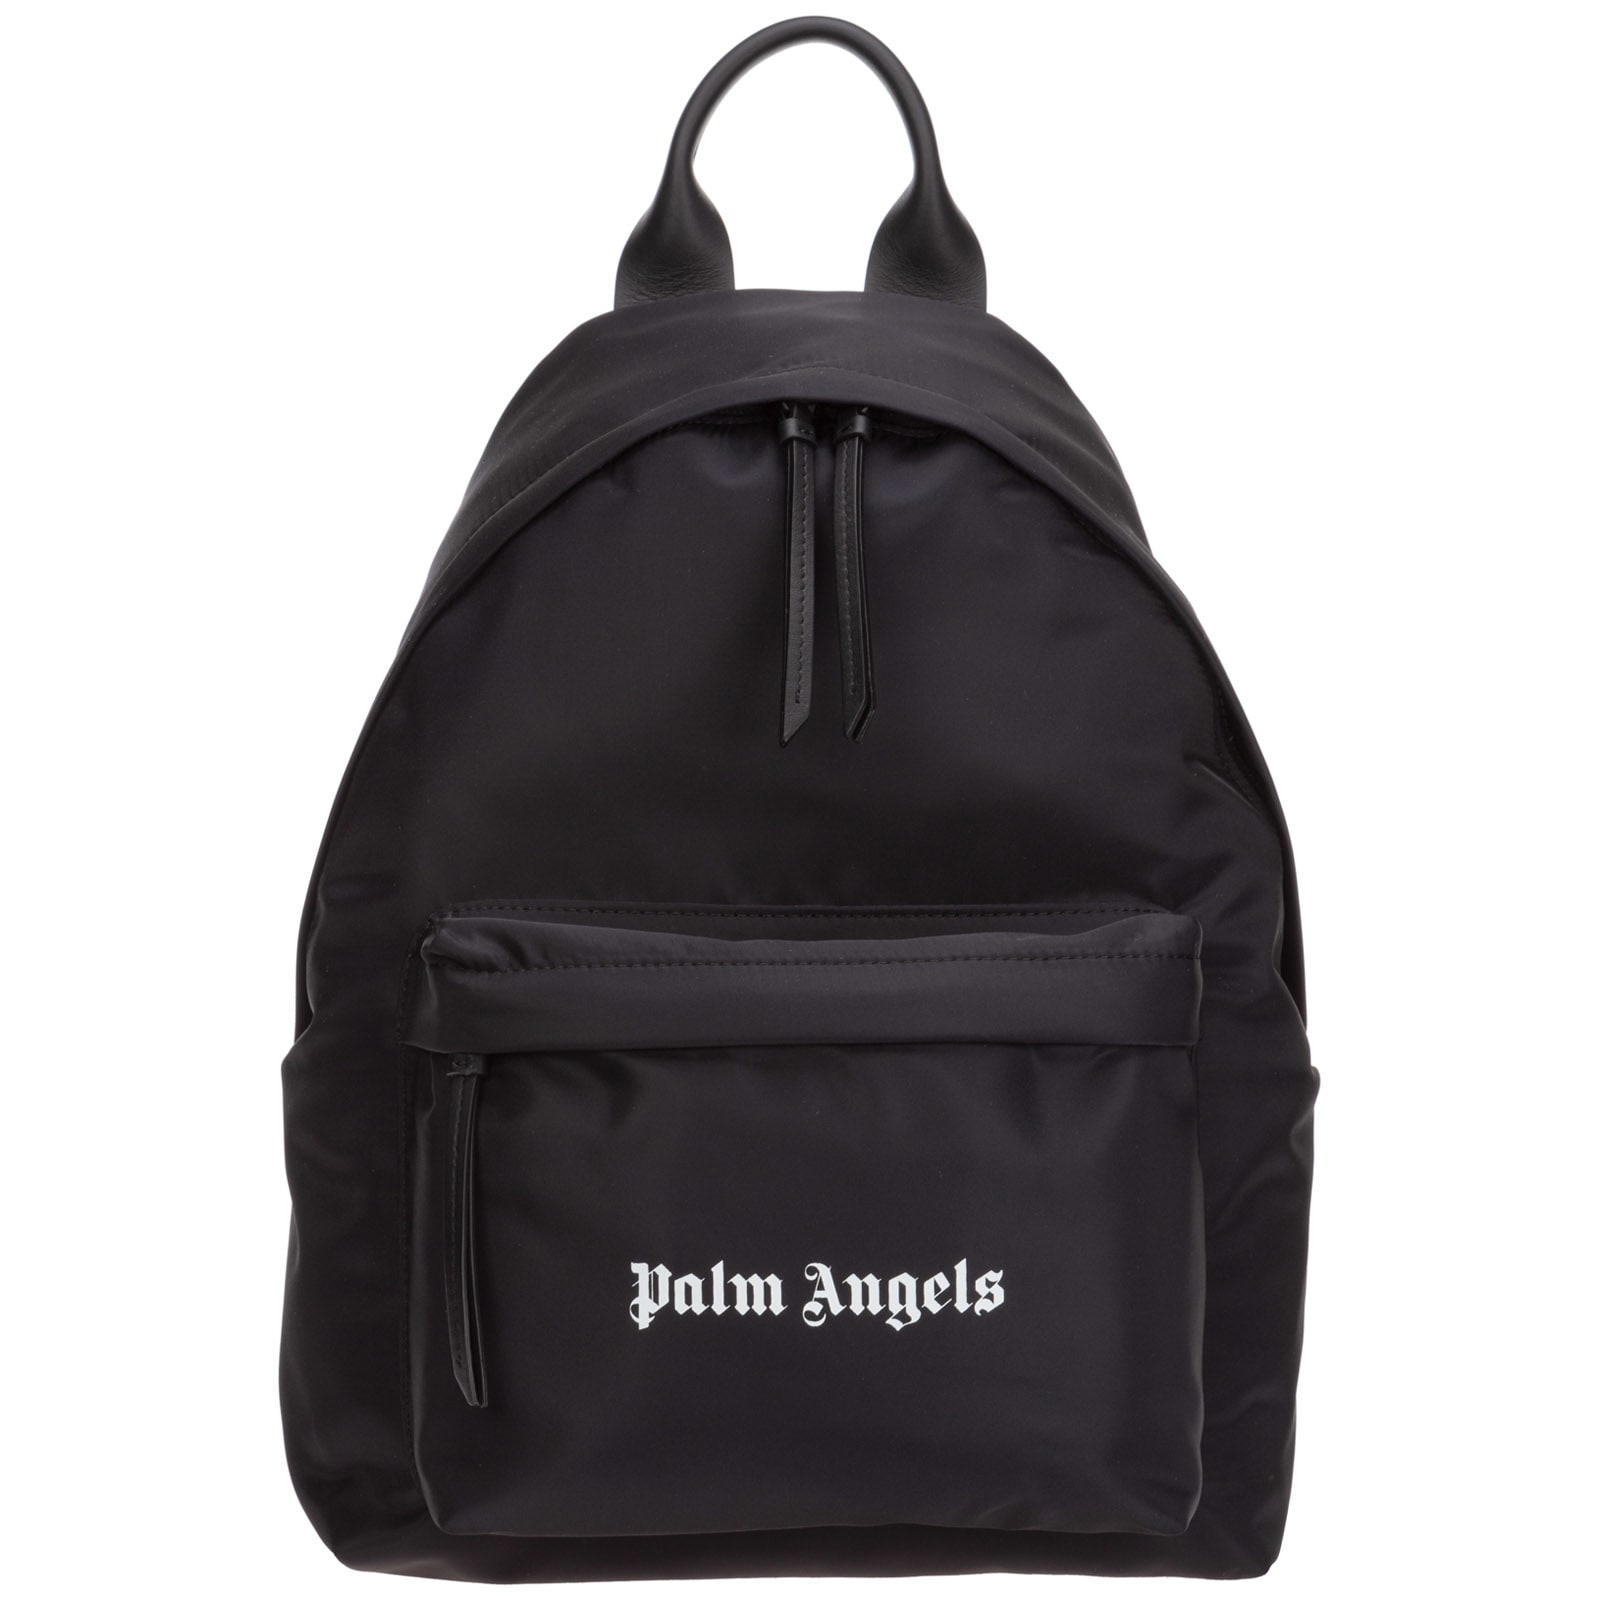 Palm Angels Bags LOGO BACKPACK